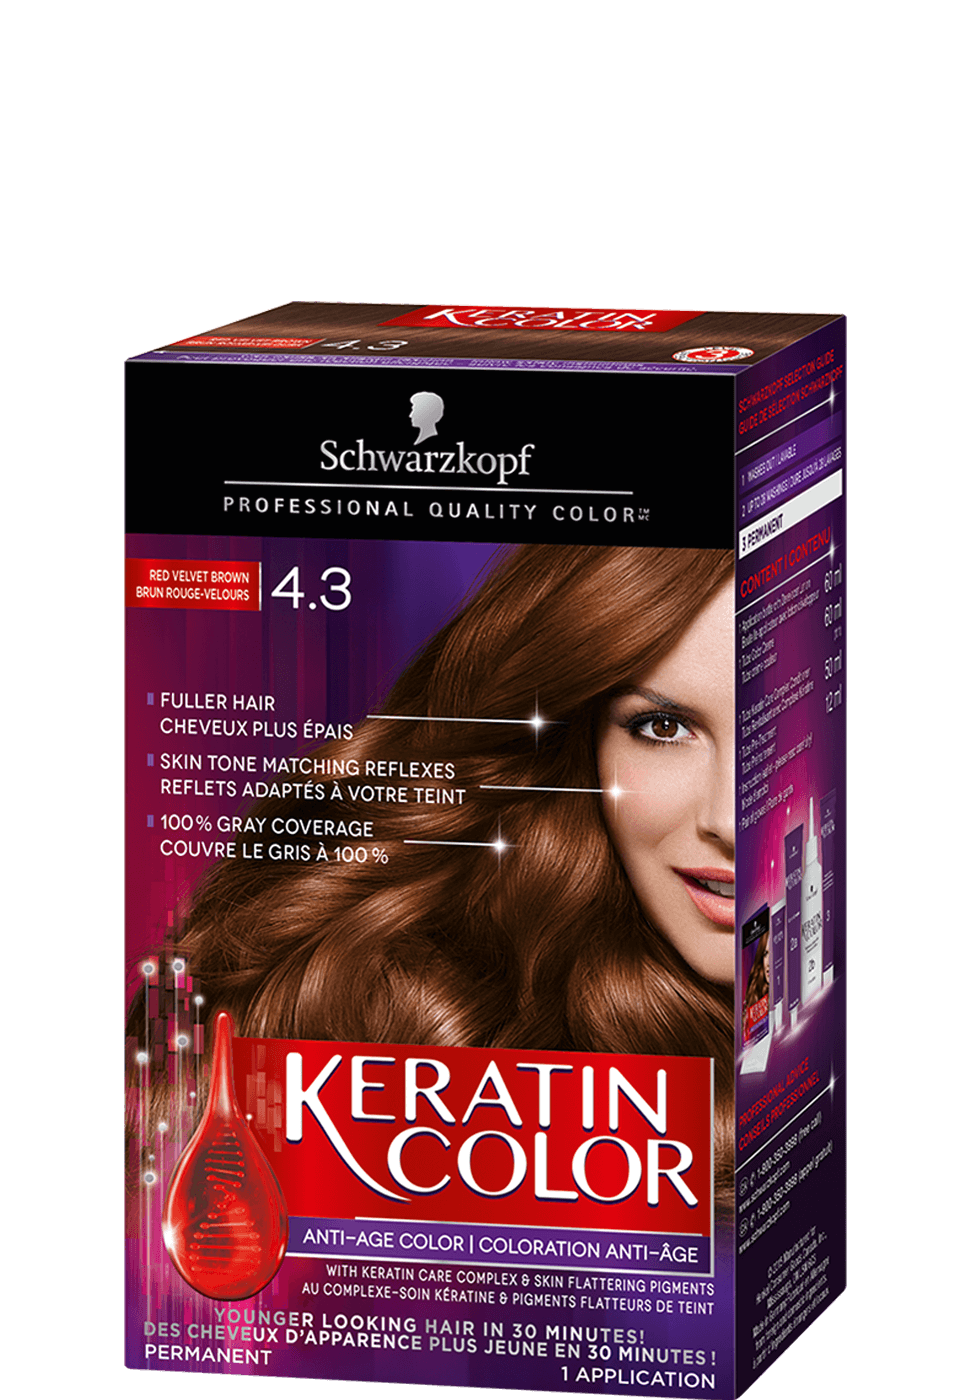 Keratin_Color_en_4_3_970x1400